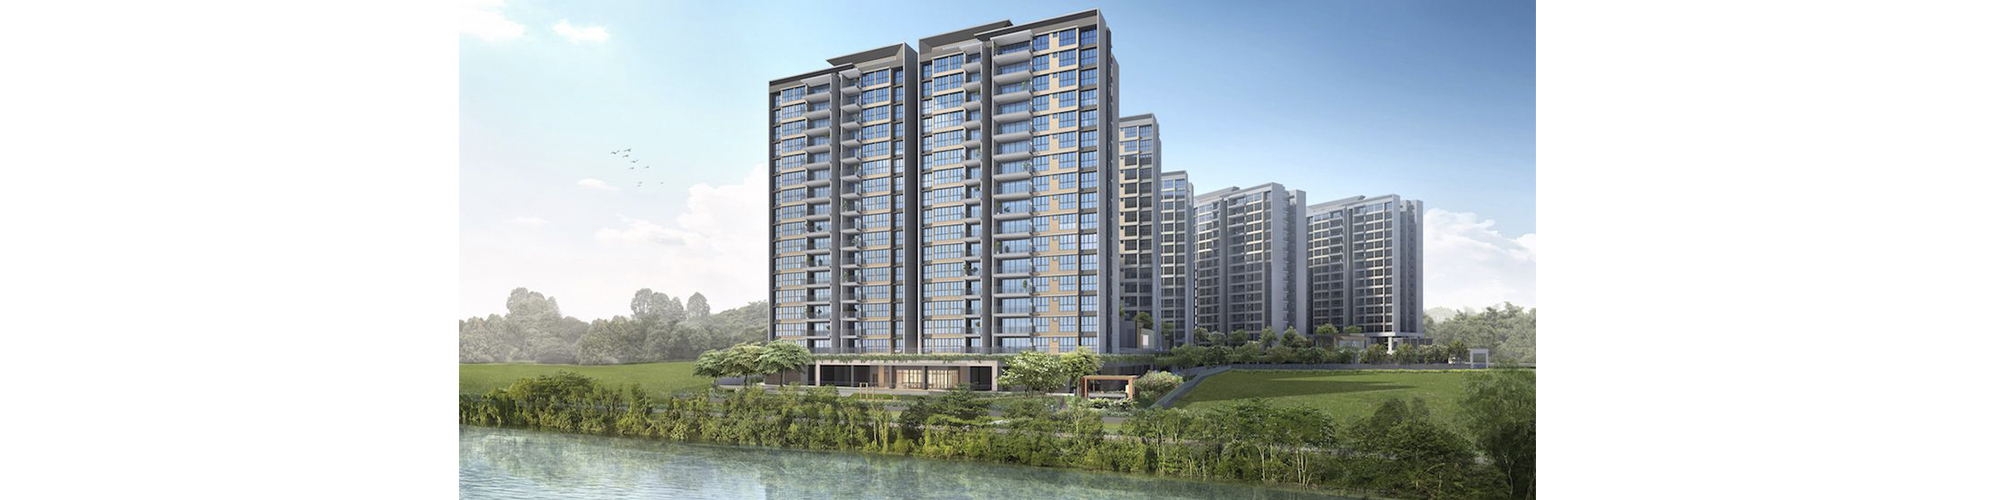 Rivercove-Residences-EC-1